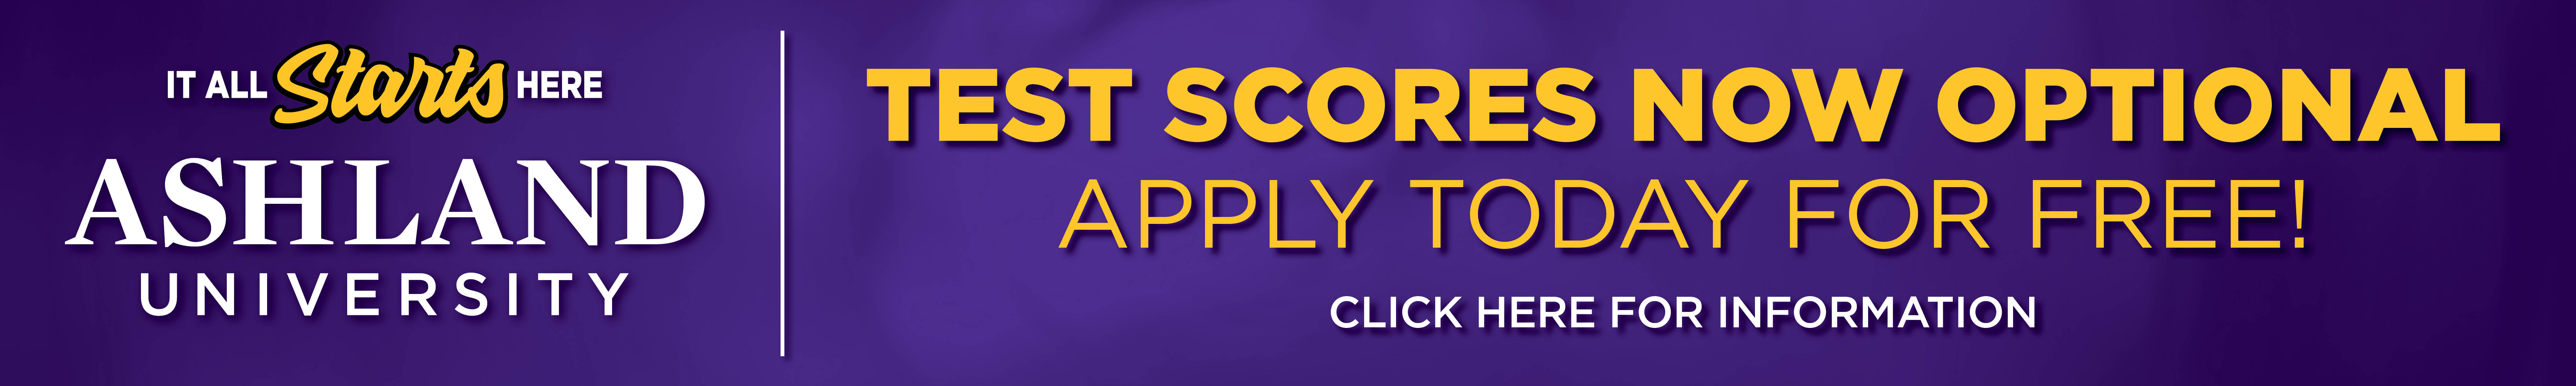 Test scores now optional. Apply today for free!